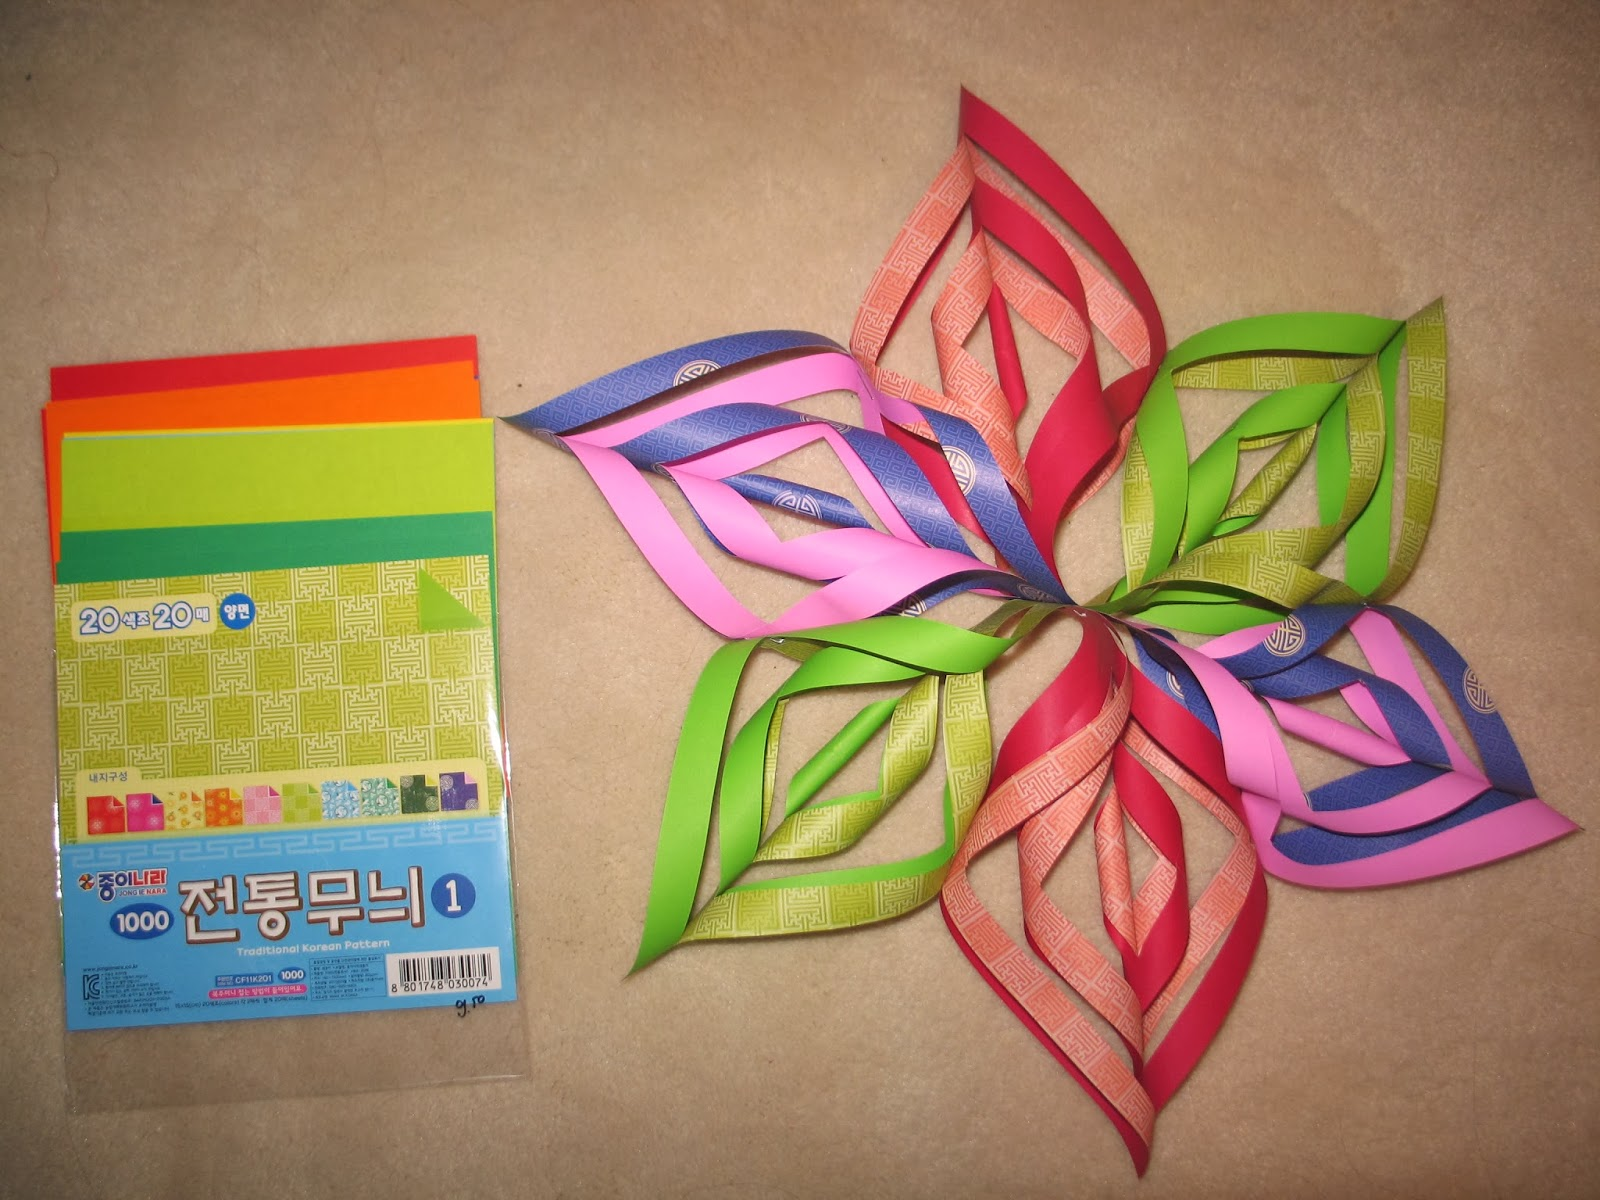 Diy star origami ornament origami star - First Thing I Did Was A Pair Of Origami Stars I Got The Idea And The How To From This Wonderful Blog Origami Star Tutorial First I Tried It With Normal